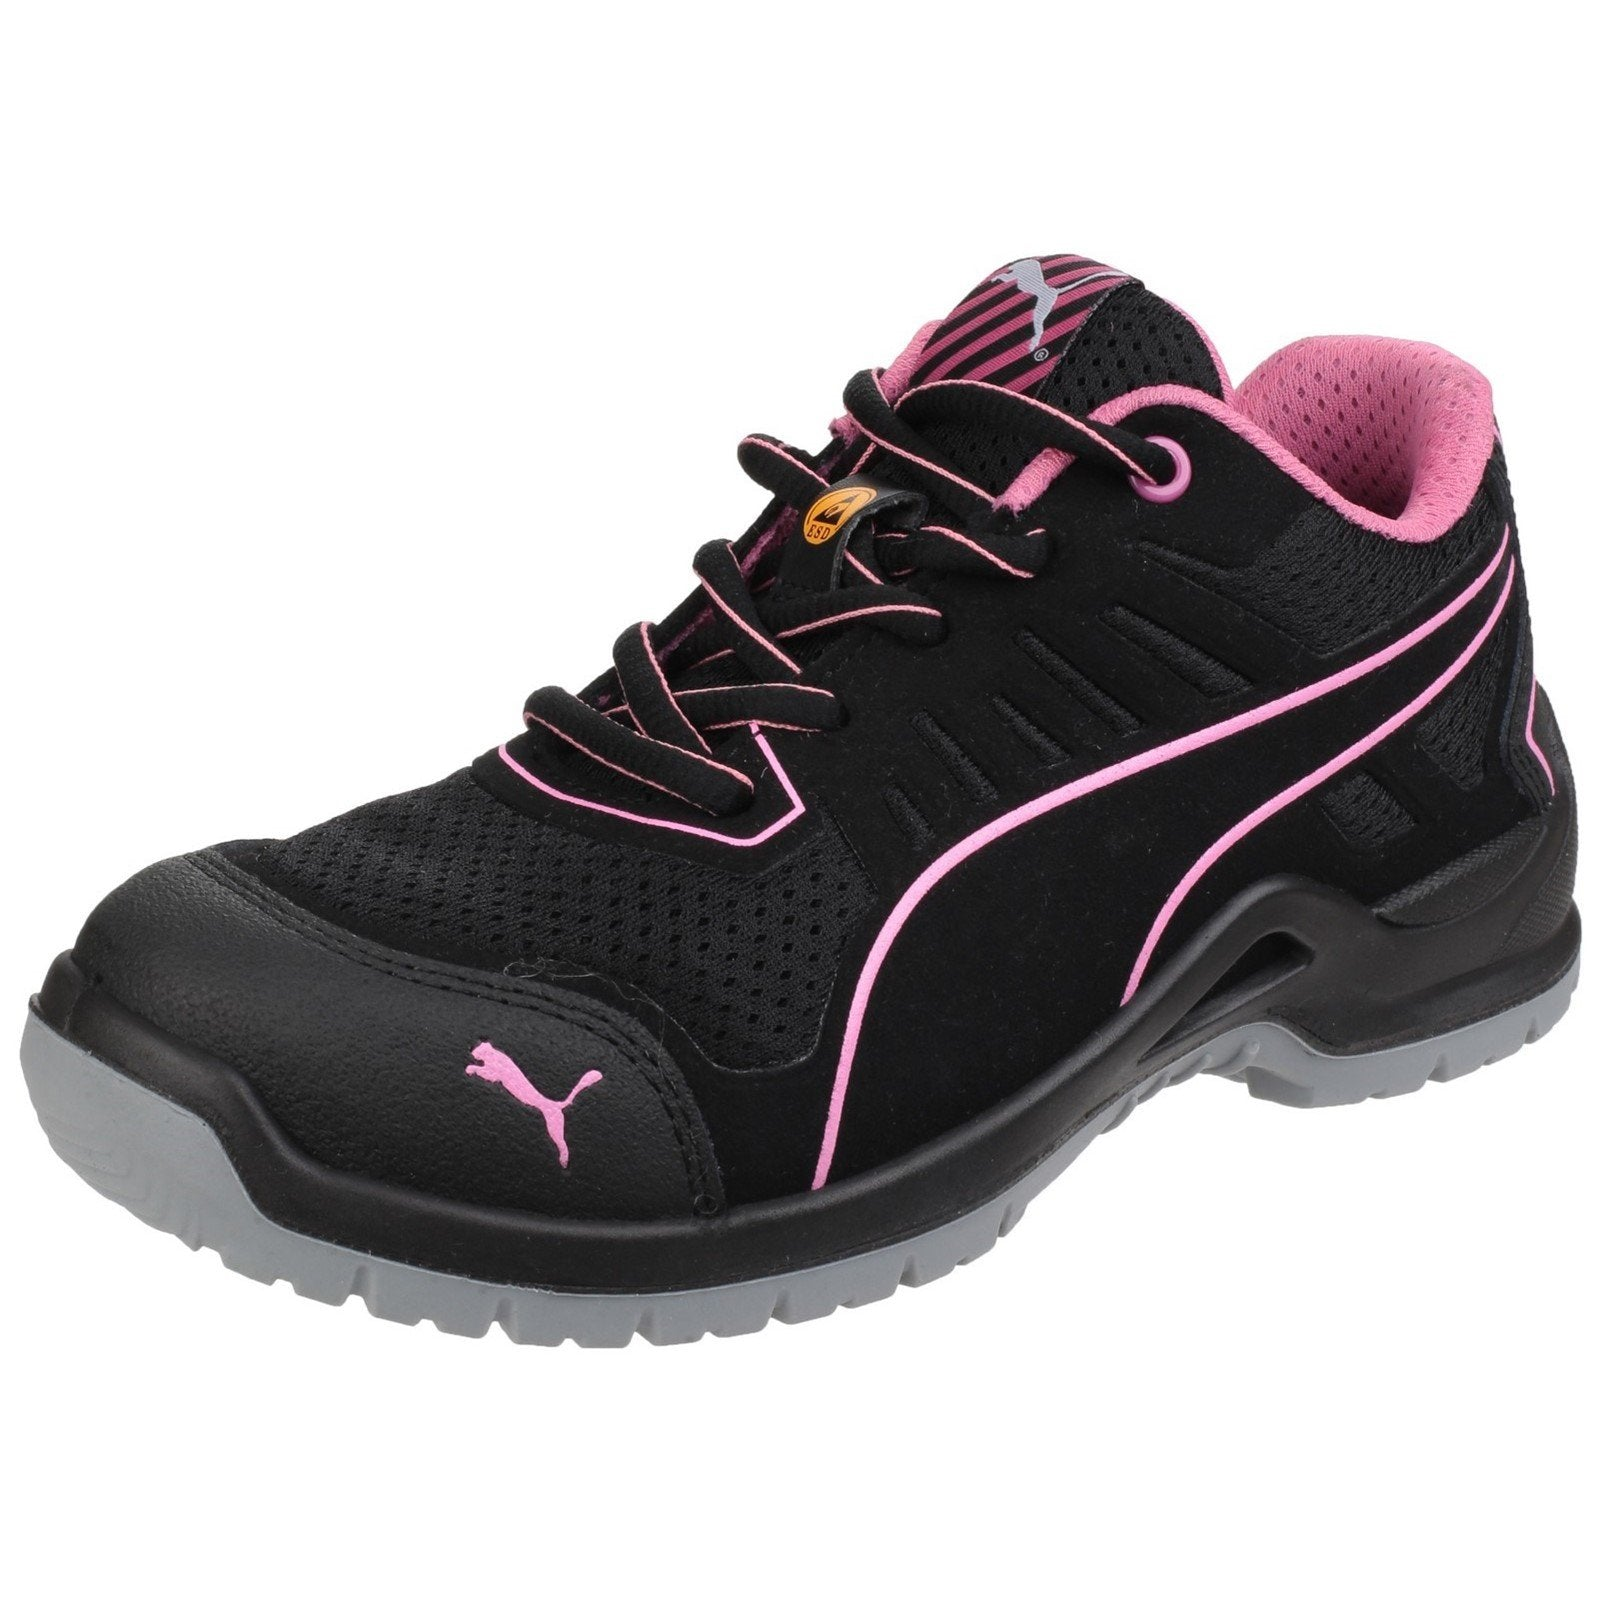 Puma Safety Fuse Tech Trainers